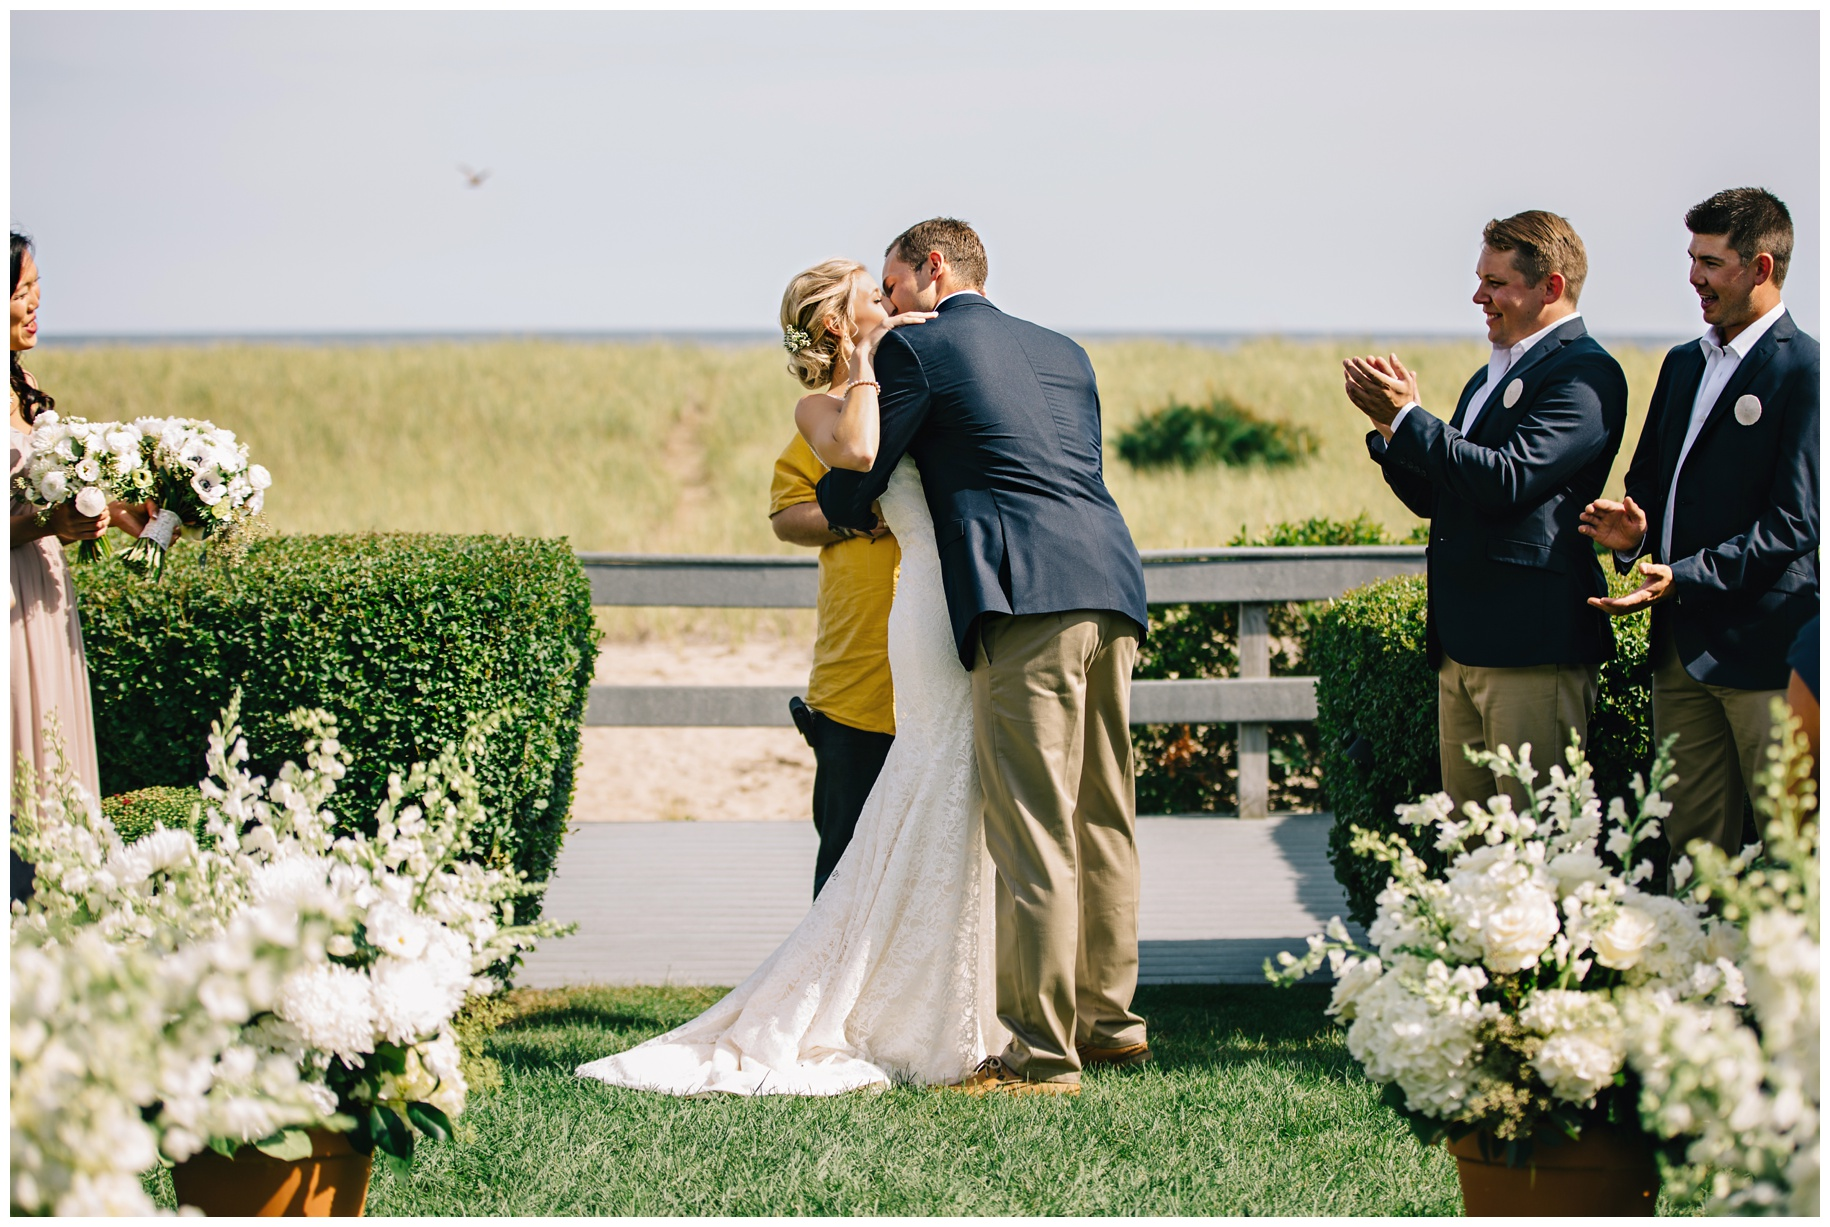 MaineWeddingPhotographer_OldOrchard_Beach_Coast_pier_tent-006